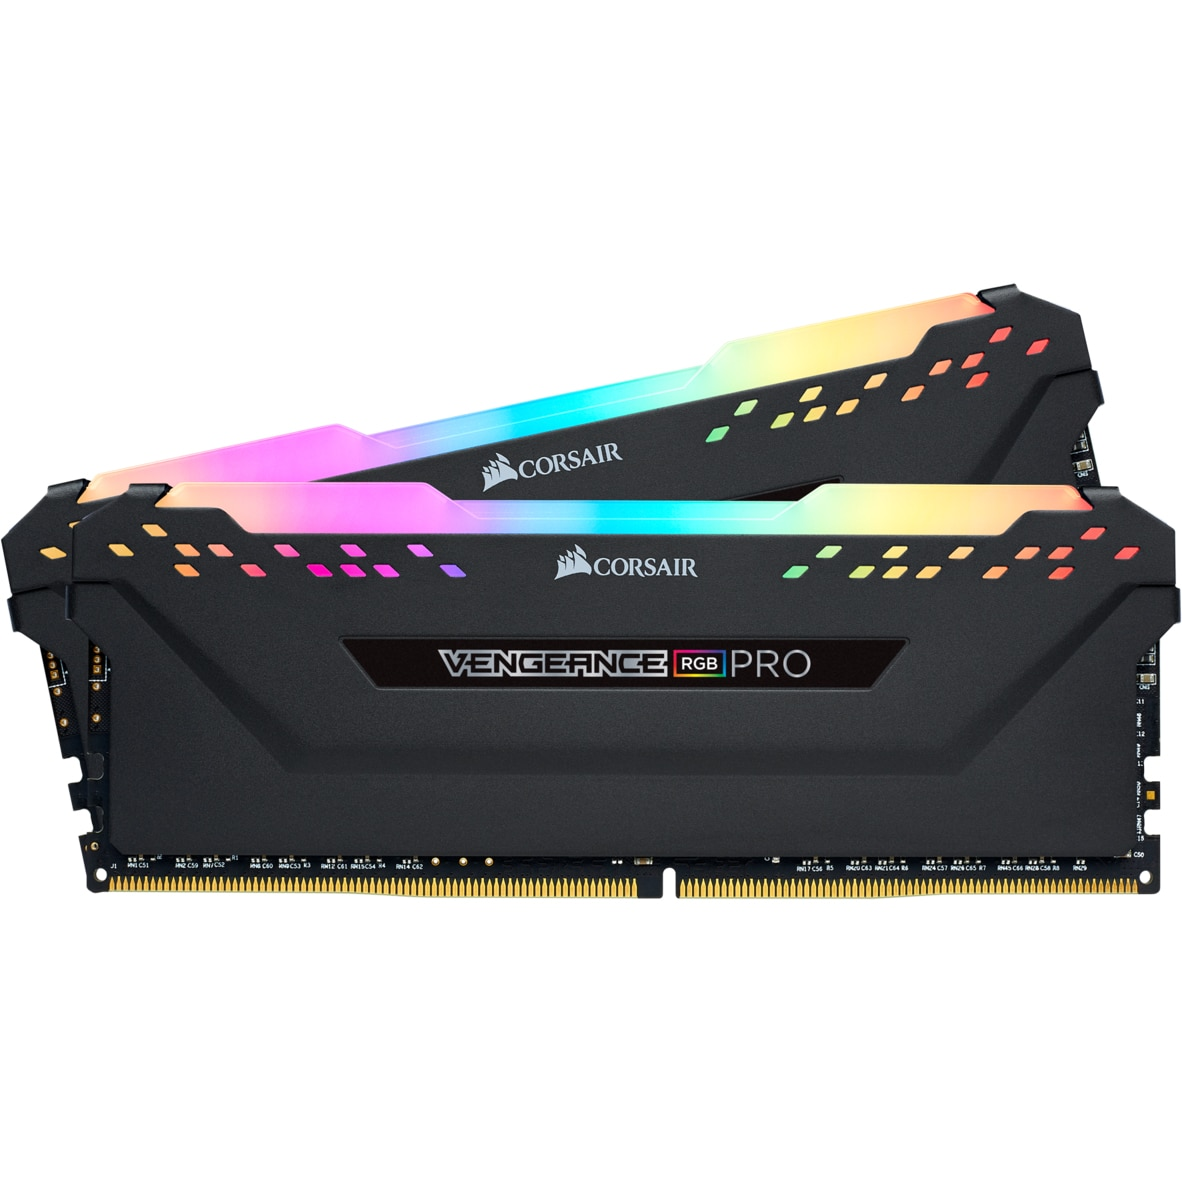 Fotografie Memorie Corsair Vengeance RGB PRO 32GB, DDR4, 3200MHz, CL16, Dual Channel Kit